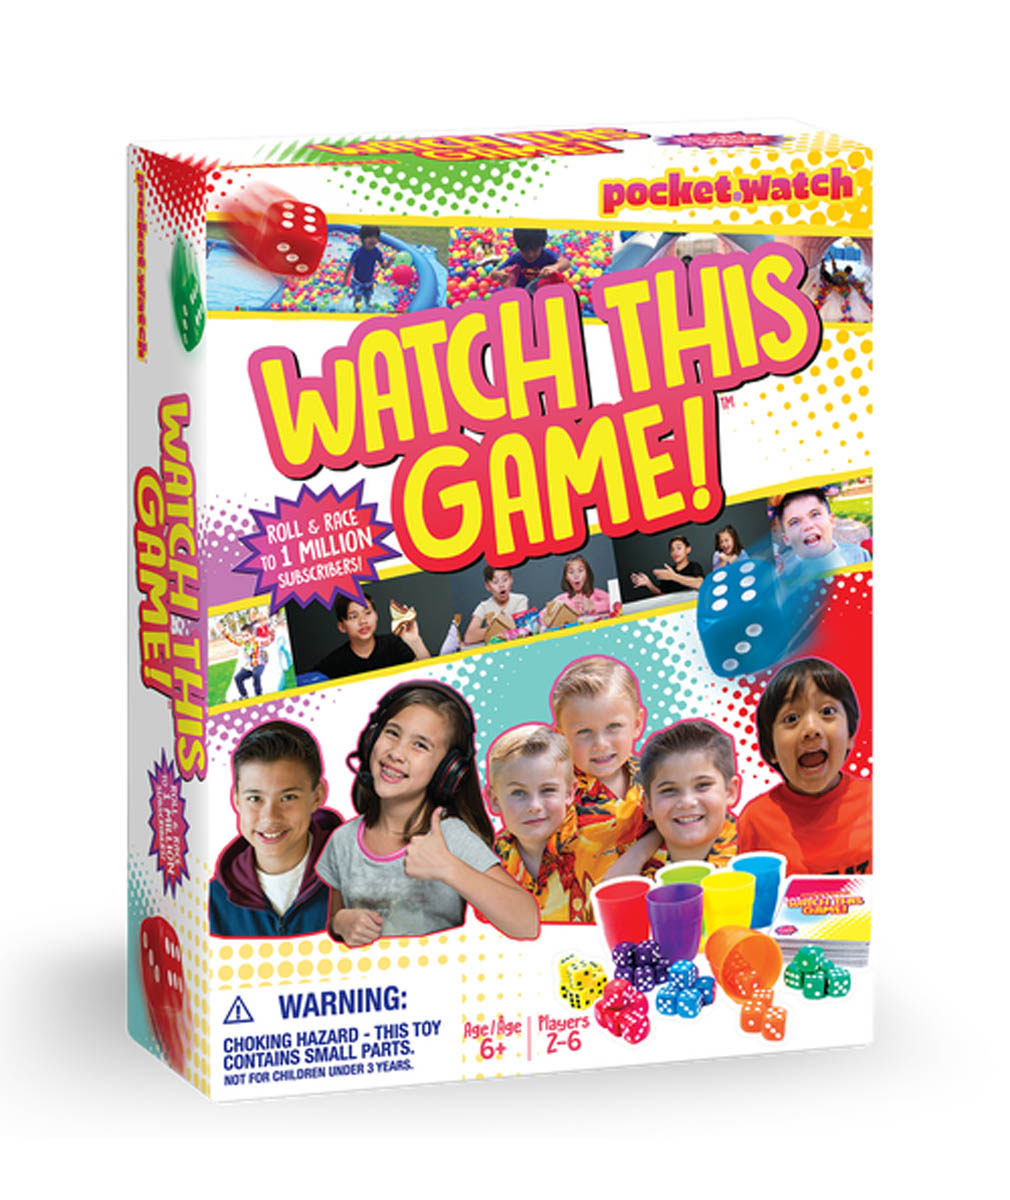 Watch This Game